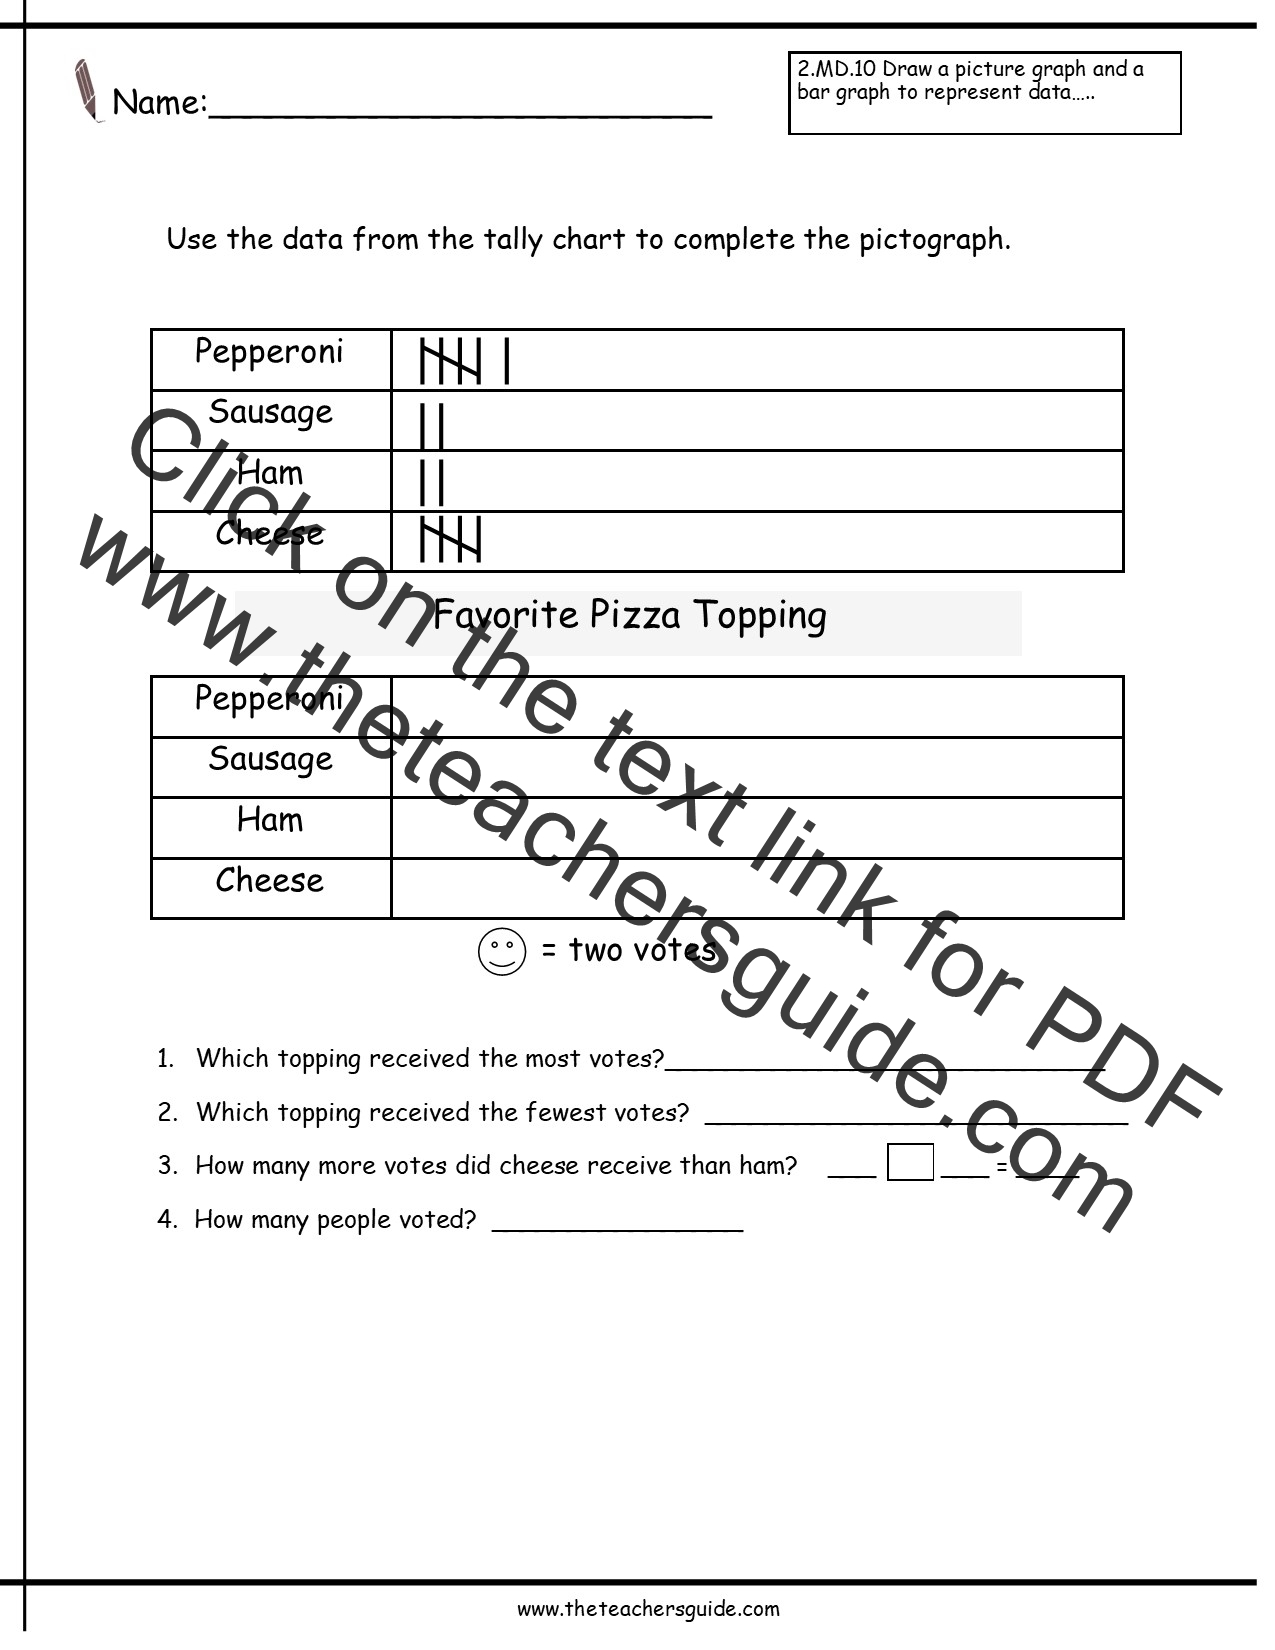 Reading And Creating Pictographs Worksheets From The Teacher S Guide